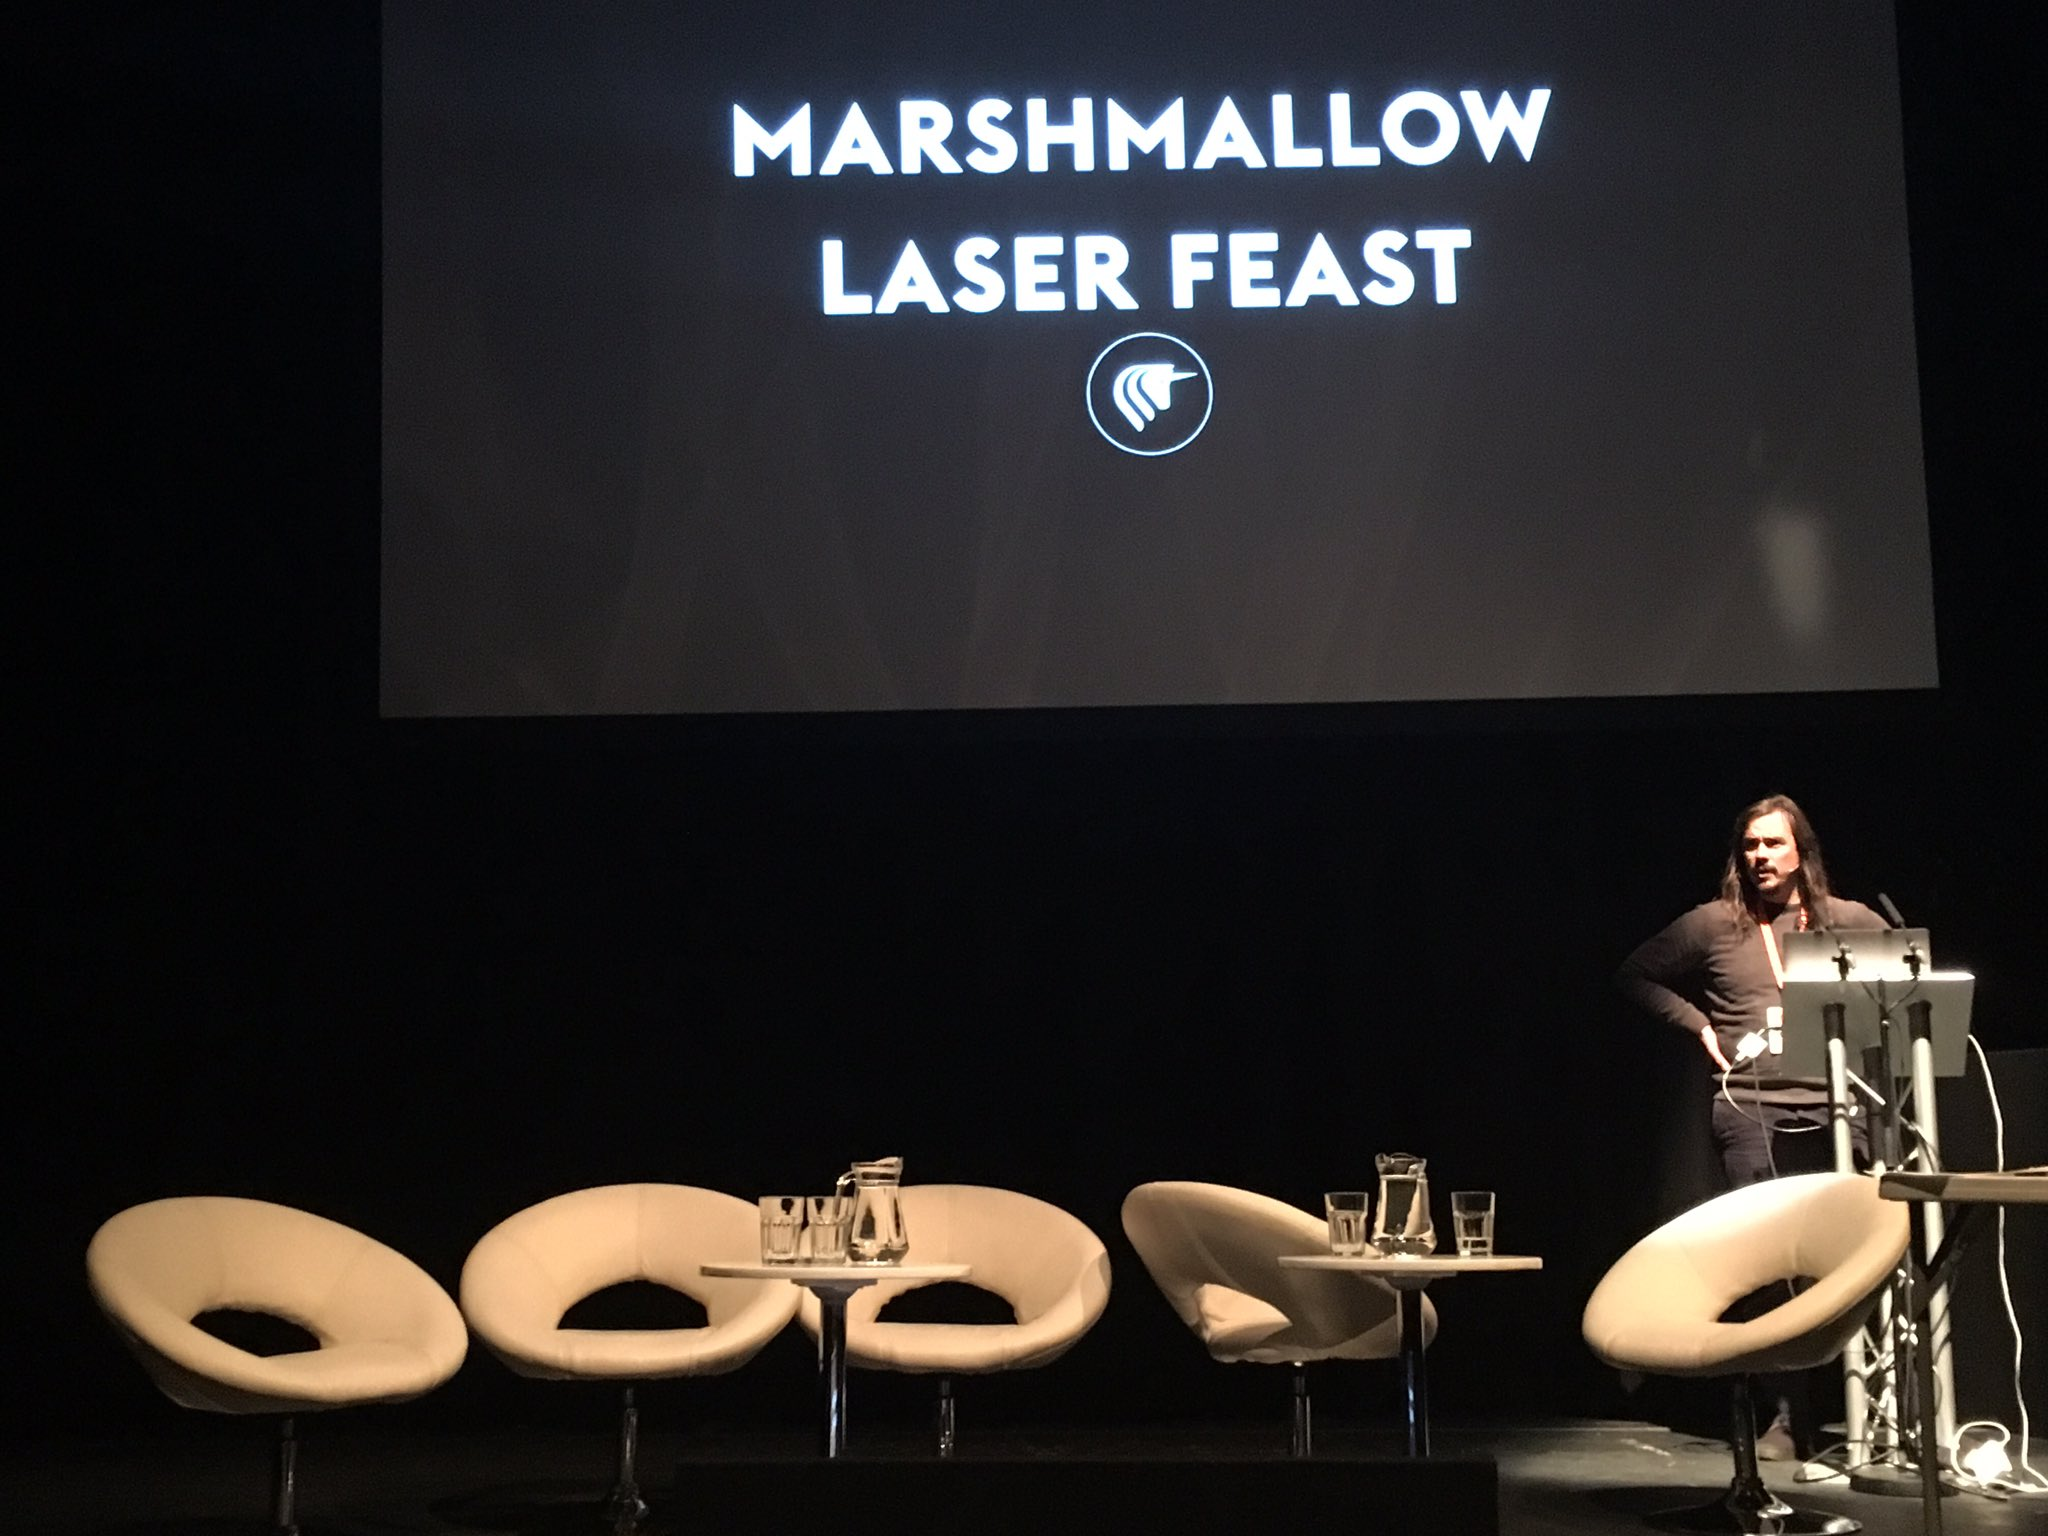 Robin McNicholas from @marshmallowlf talks turning the isolation of VR into a communal experience @ Alternate Realities Summit #sheffdocfest https://t.co/6L7kF8oXMV